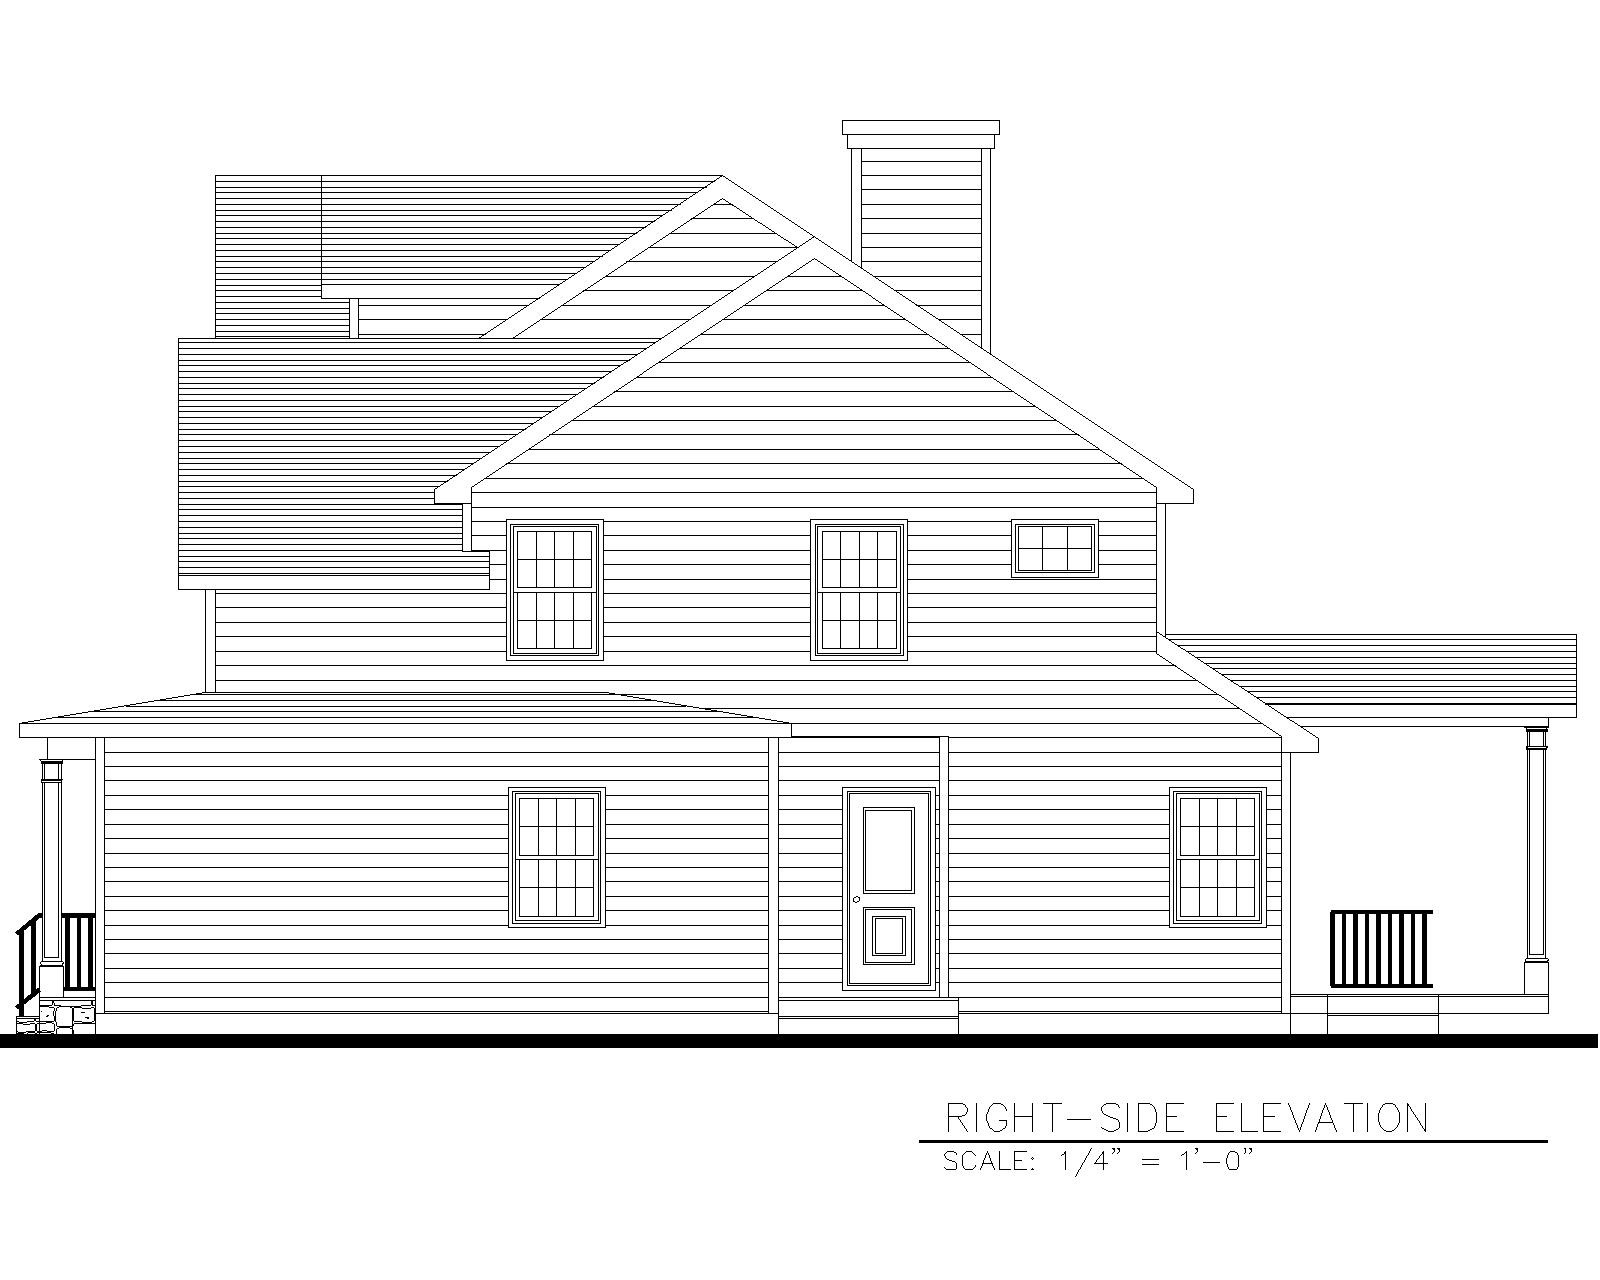 816 Right Side Elevation